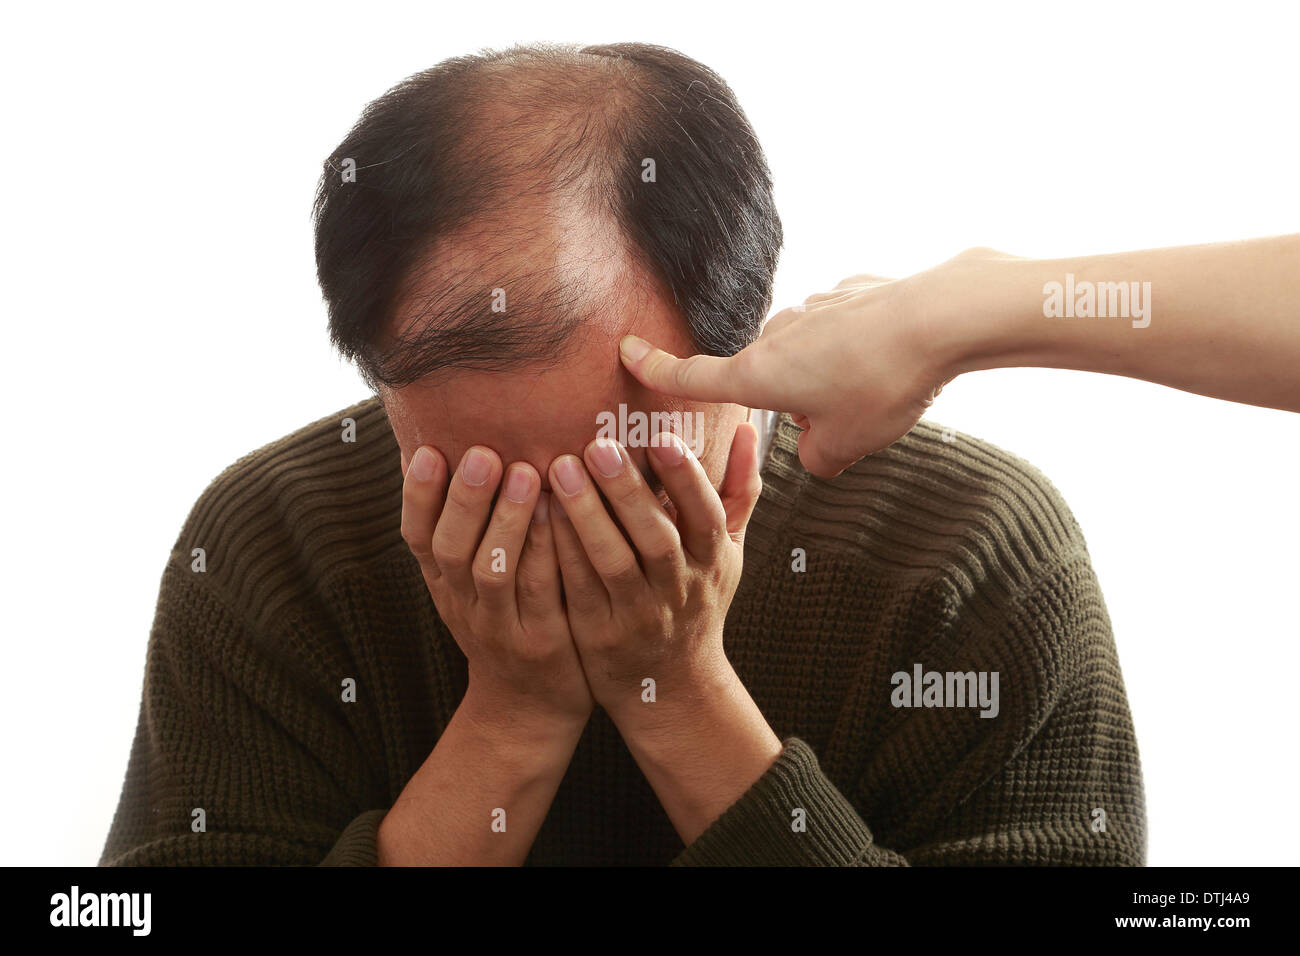 A shameful asian man covering his face with both hands - Stock Image